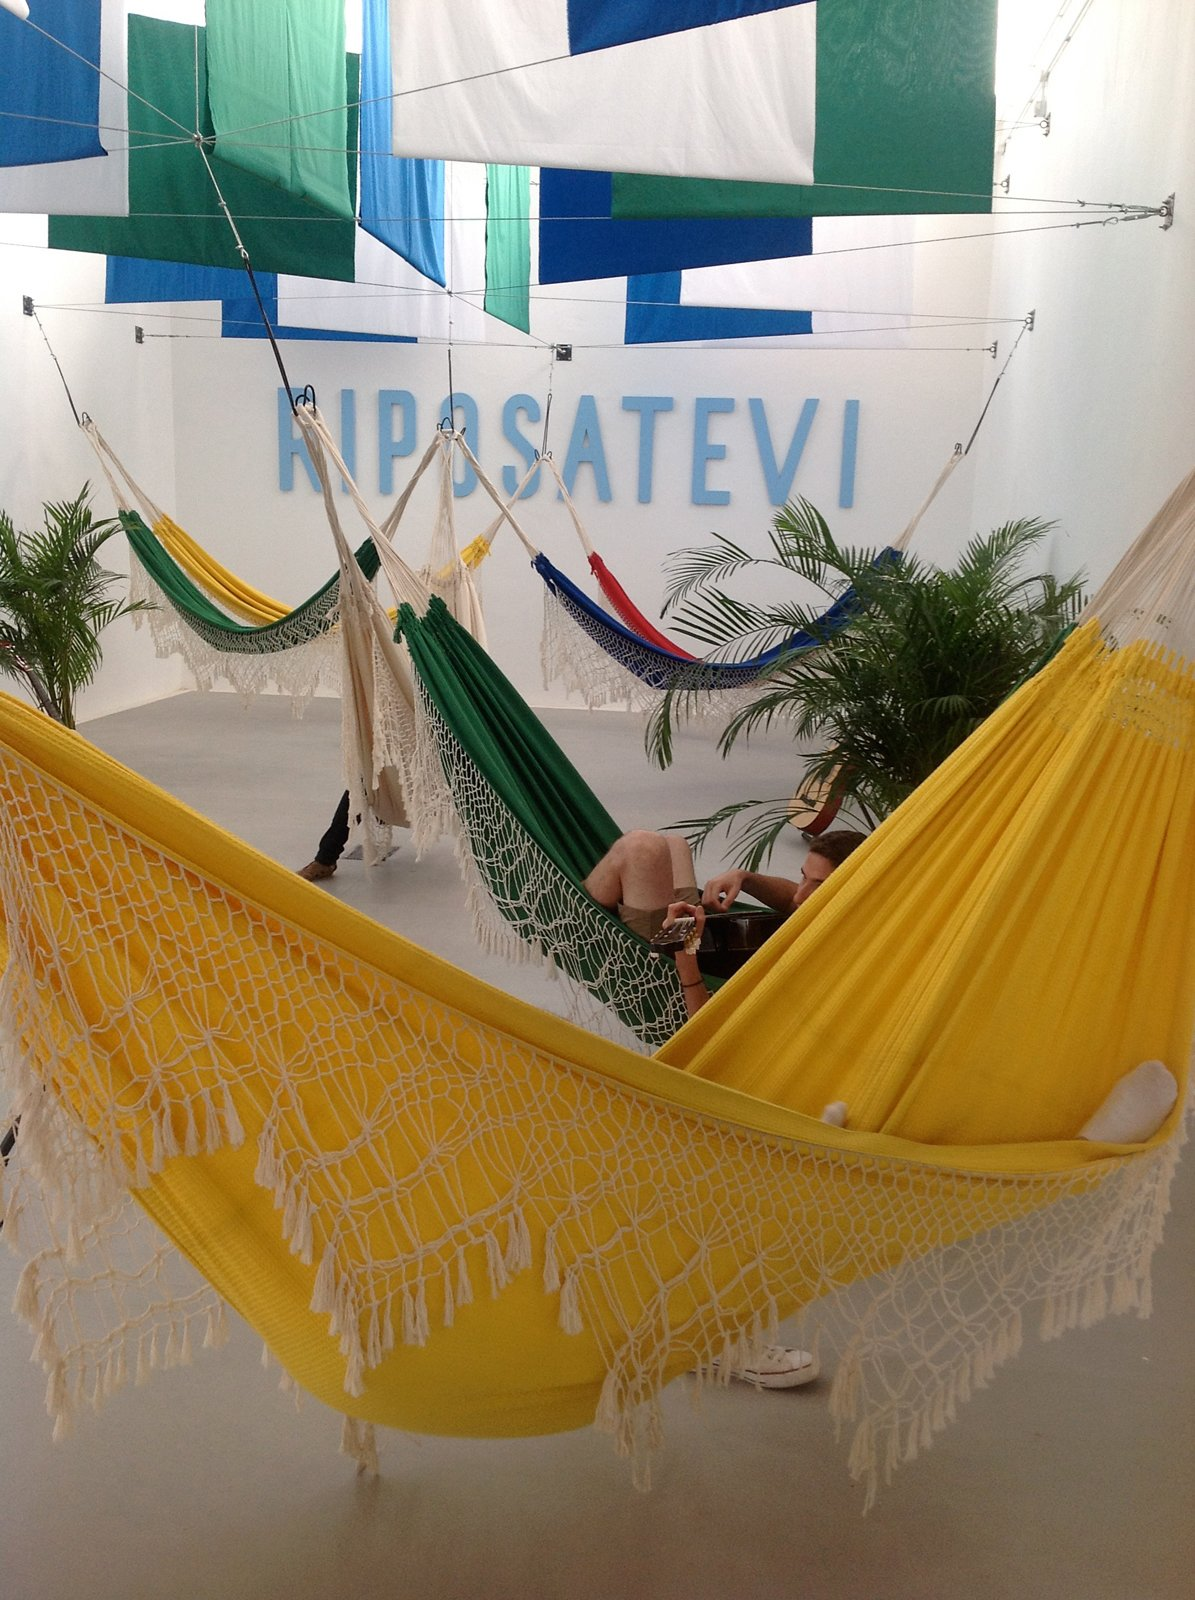 Curated by Lauro Cavalcanti, the recreation of the Riposatevi installation from the 1964 Milan Biennale, creates an environment for lounging.  Photo 4 of 7 in Venice Biennale 2012: Common Ground